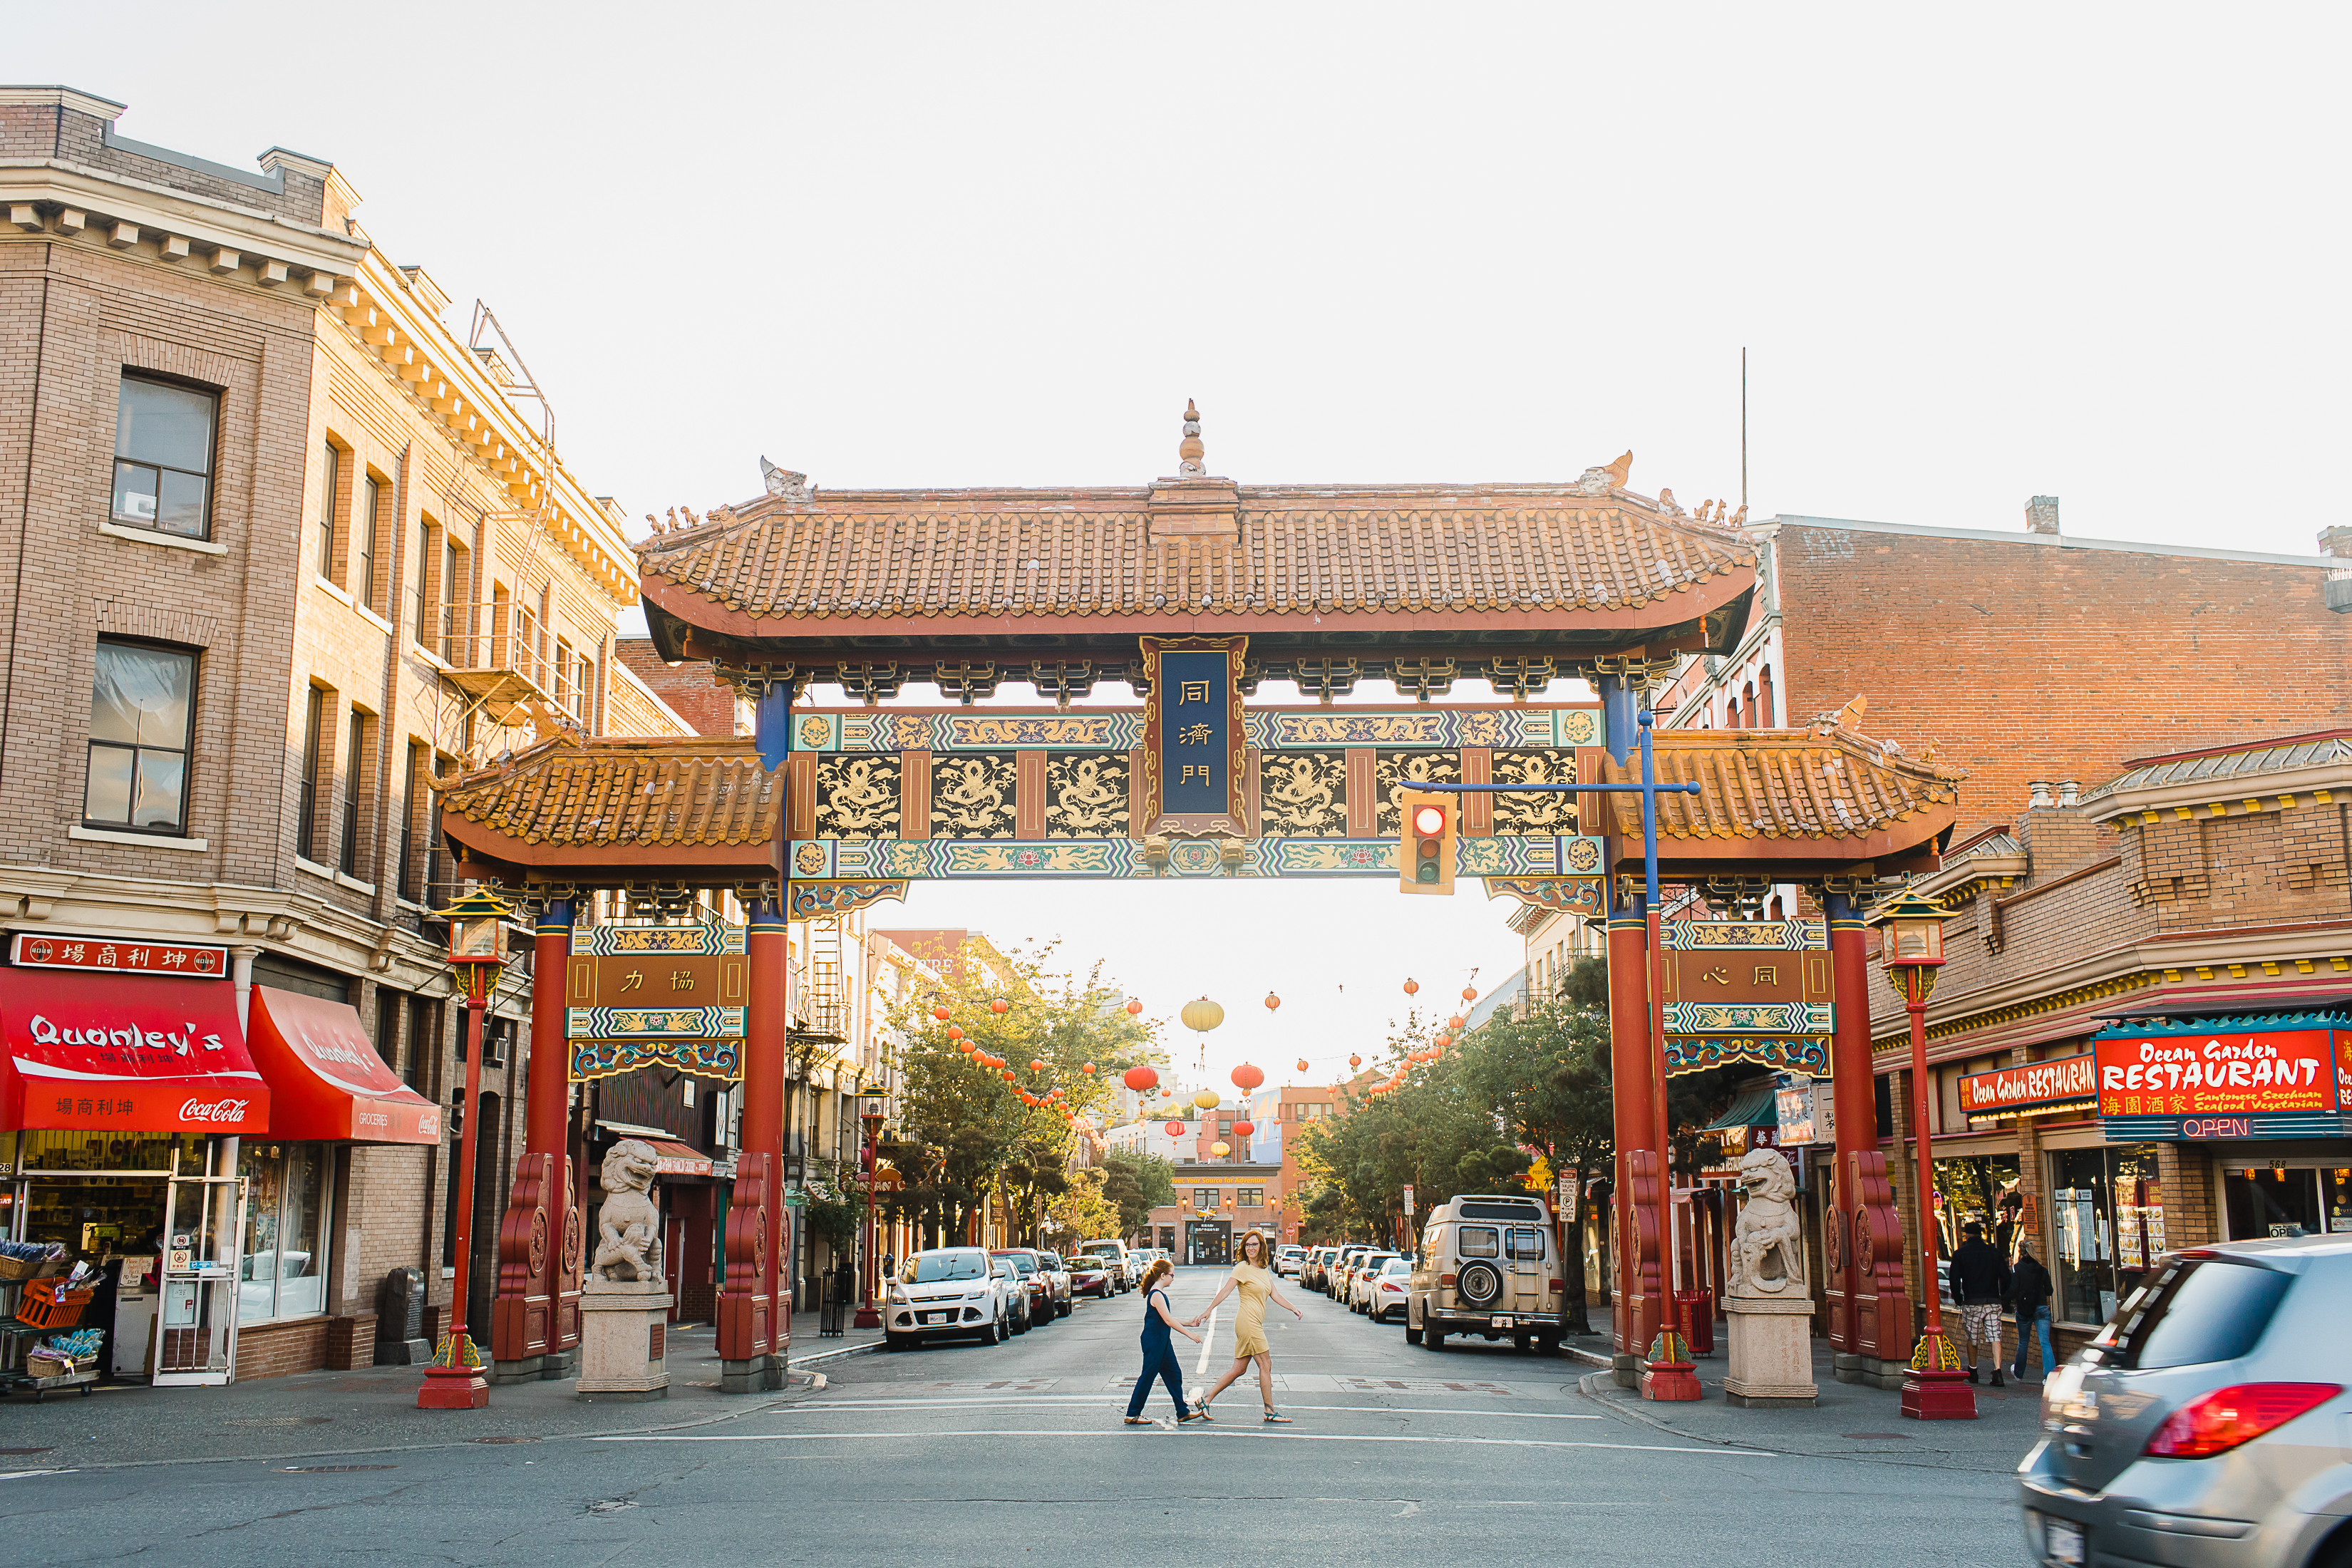 Two people running across the street in front of the Chinatown gates in Victoria BC